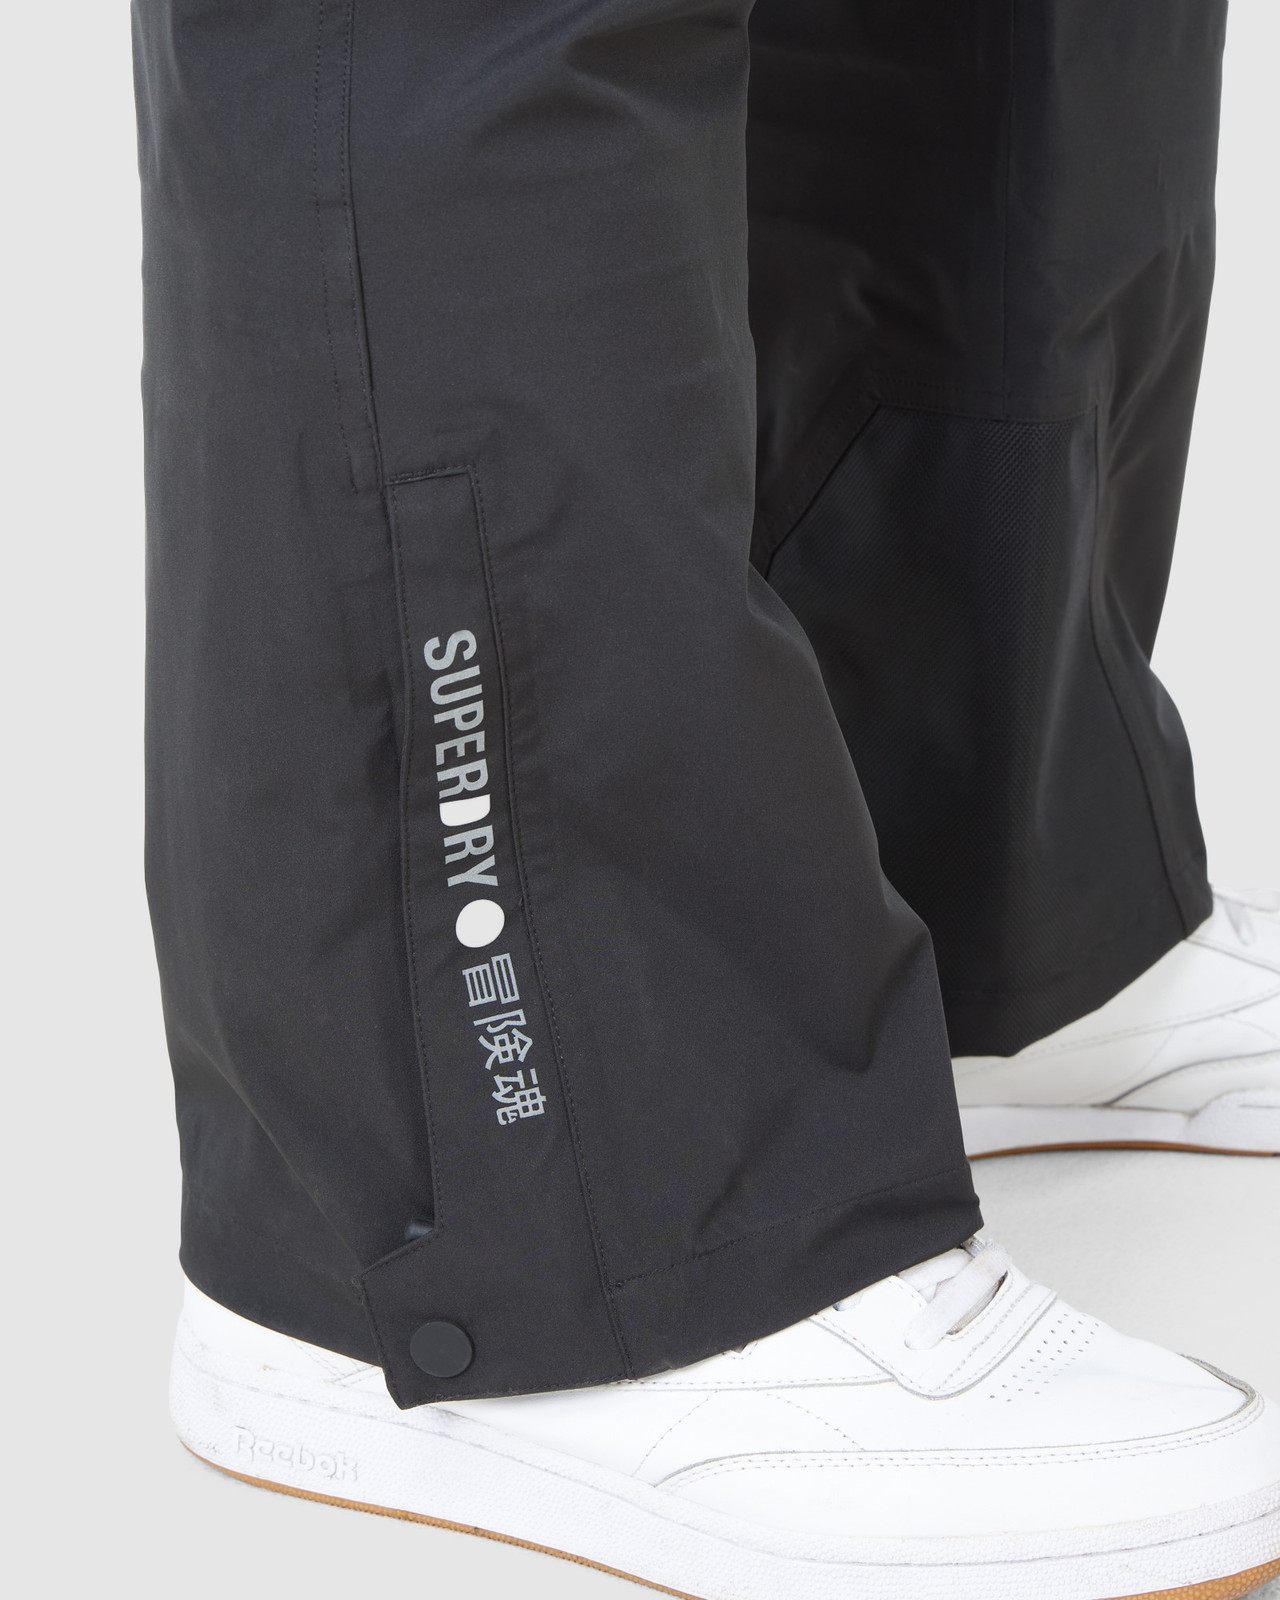 Superdry Mens EXPEDITION SHELL PANT Black Snow Pants 13